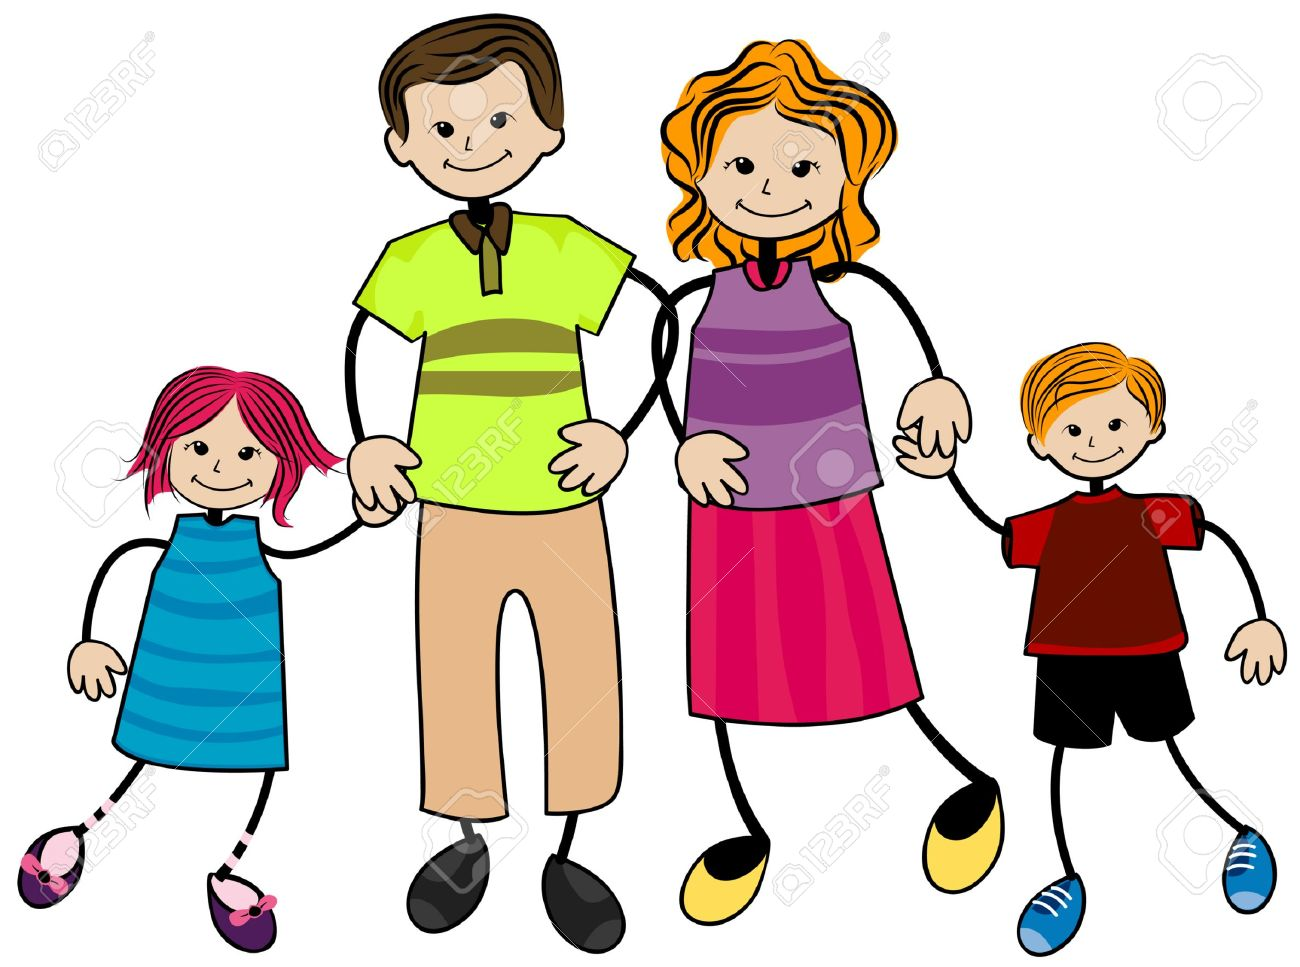 family clip art free printable clipart panda free clipart images rh clipartpanda com clipart of family and friends day clip art of family members